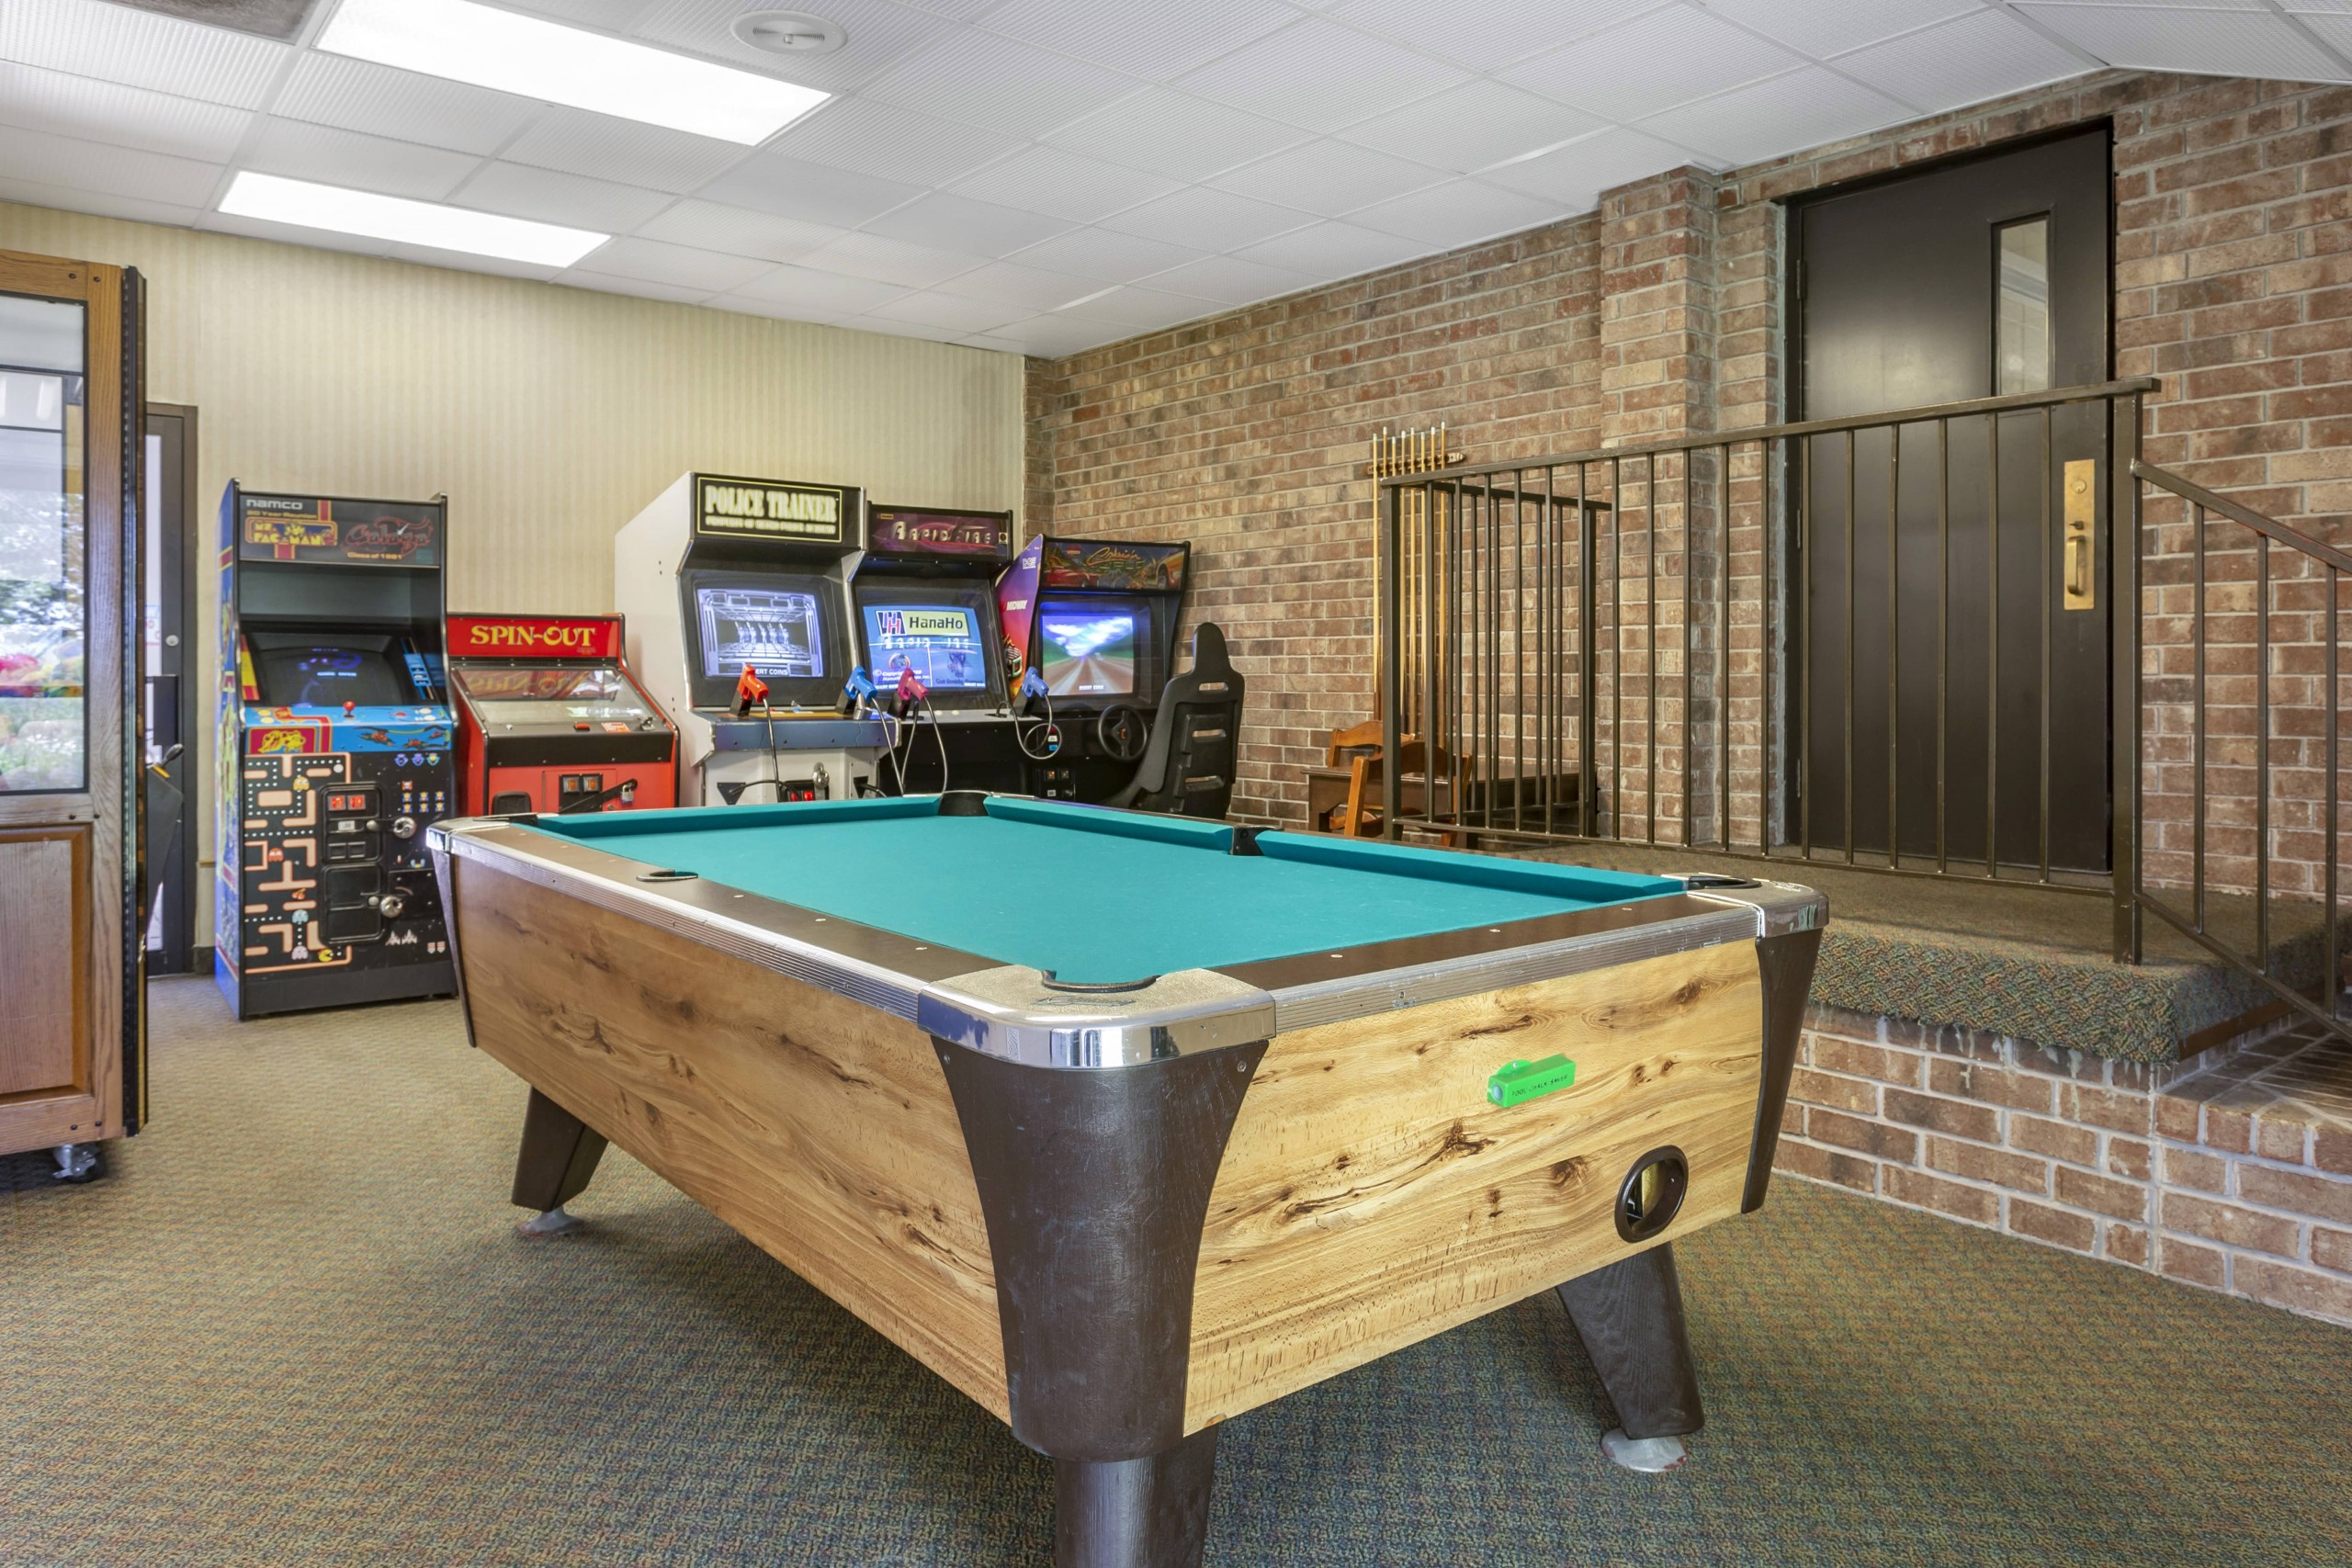 Comfort Inn Thousand Hills Game Room